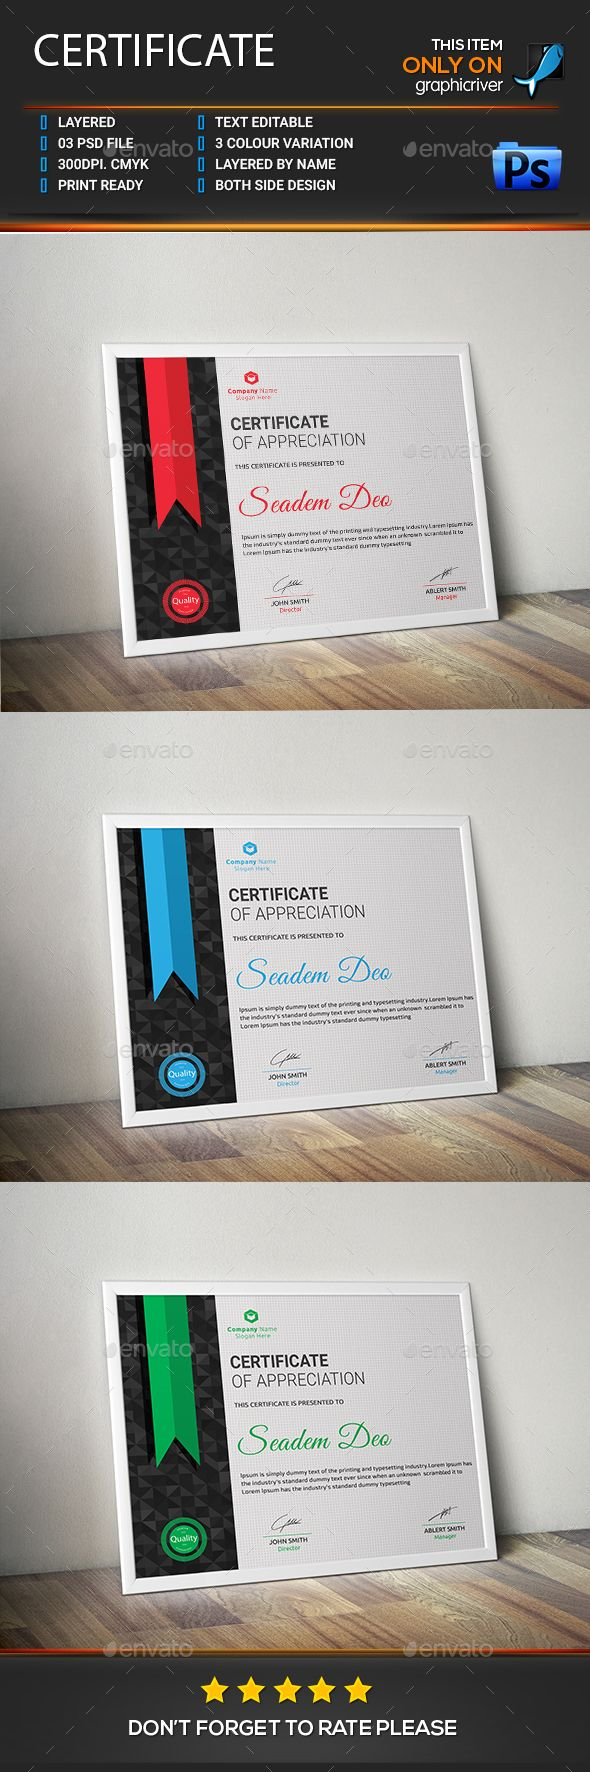 Certificate - #Certificates #Stationery Download here: https://graphicriver.net/item/certificate/18543930?ref=alena994